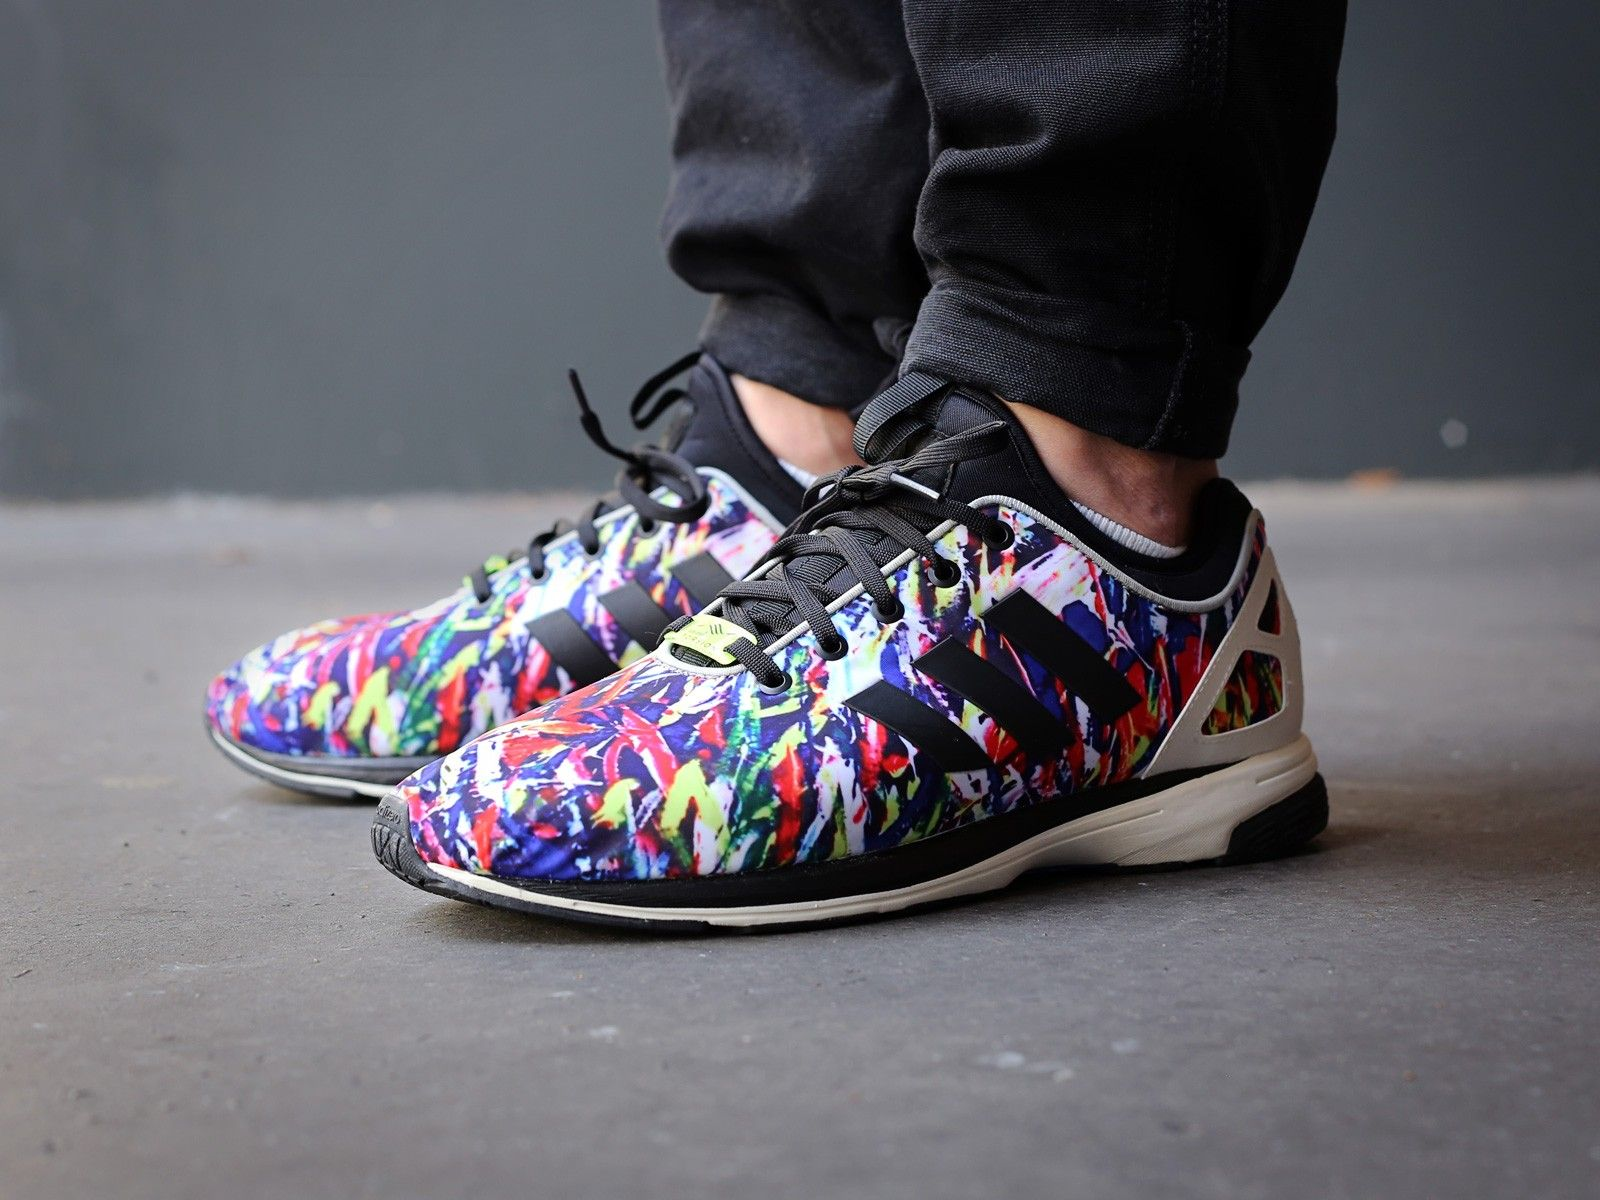 Adidas Zx Flux Nps Shoes